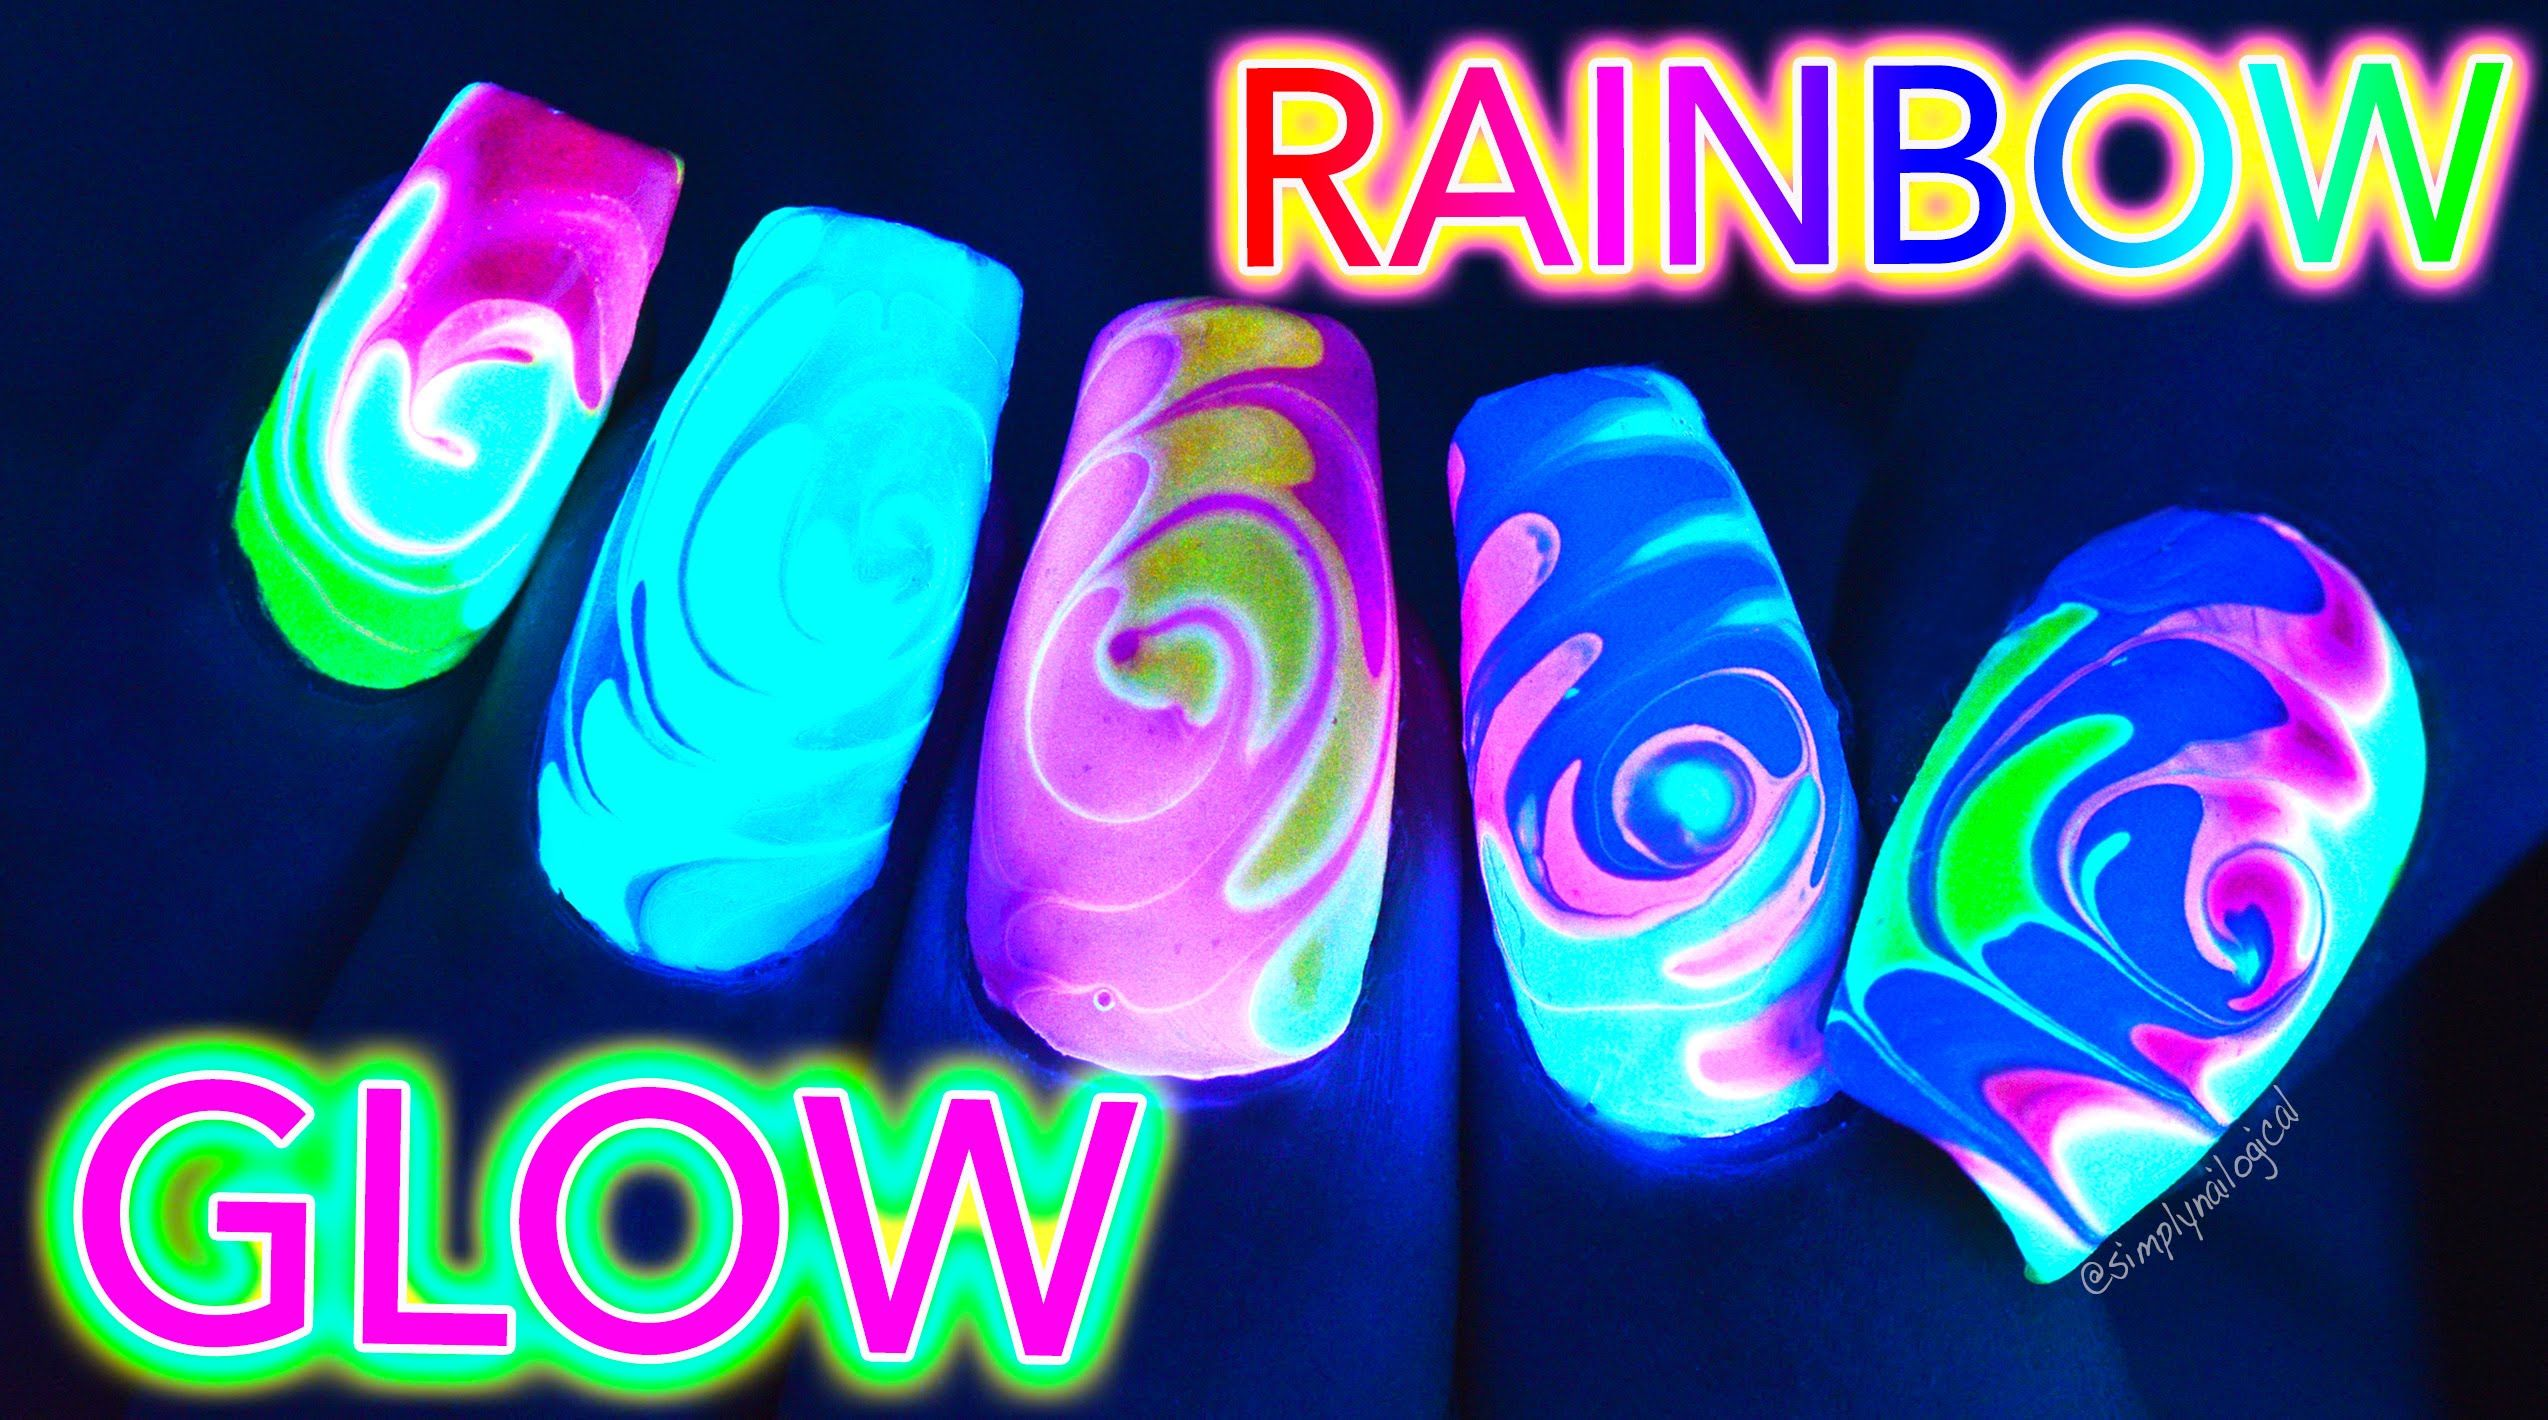 I PLAYED WITH MORE GLOW IN THE DARK NAIL POLISHES TO MAKE SOME FUN ...